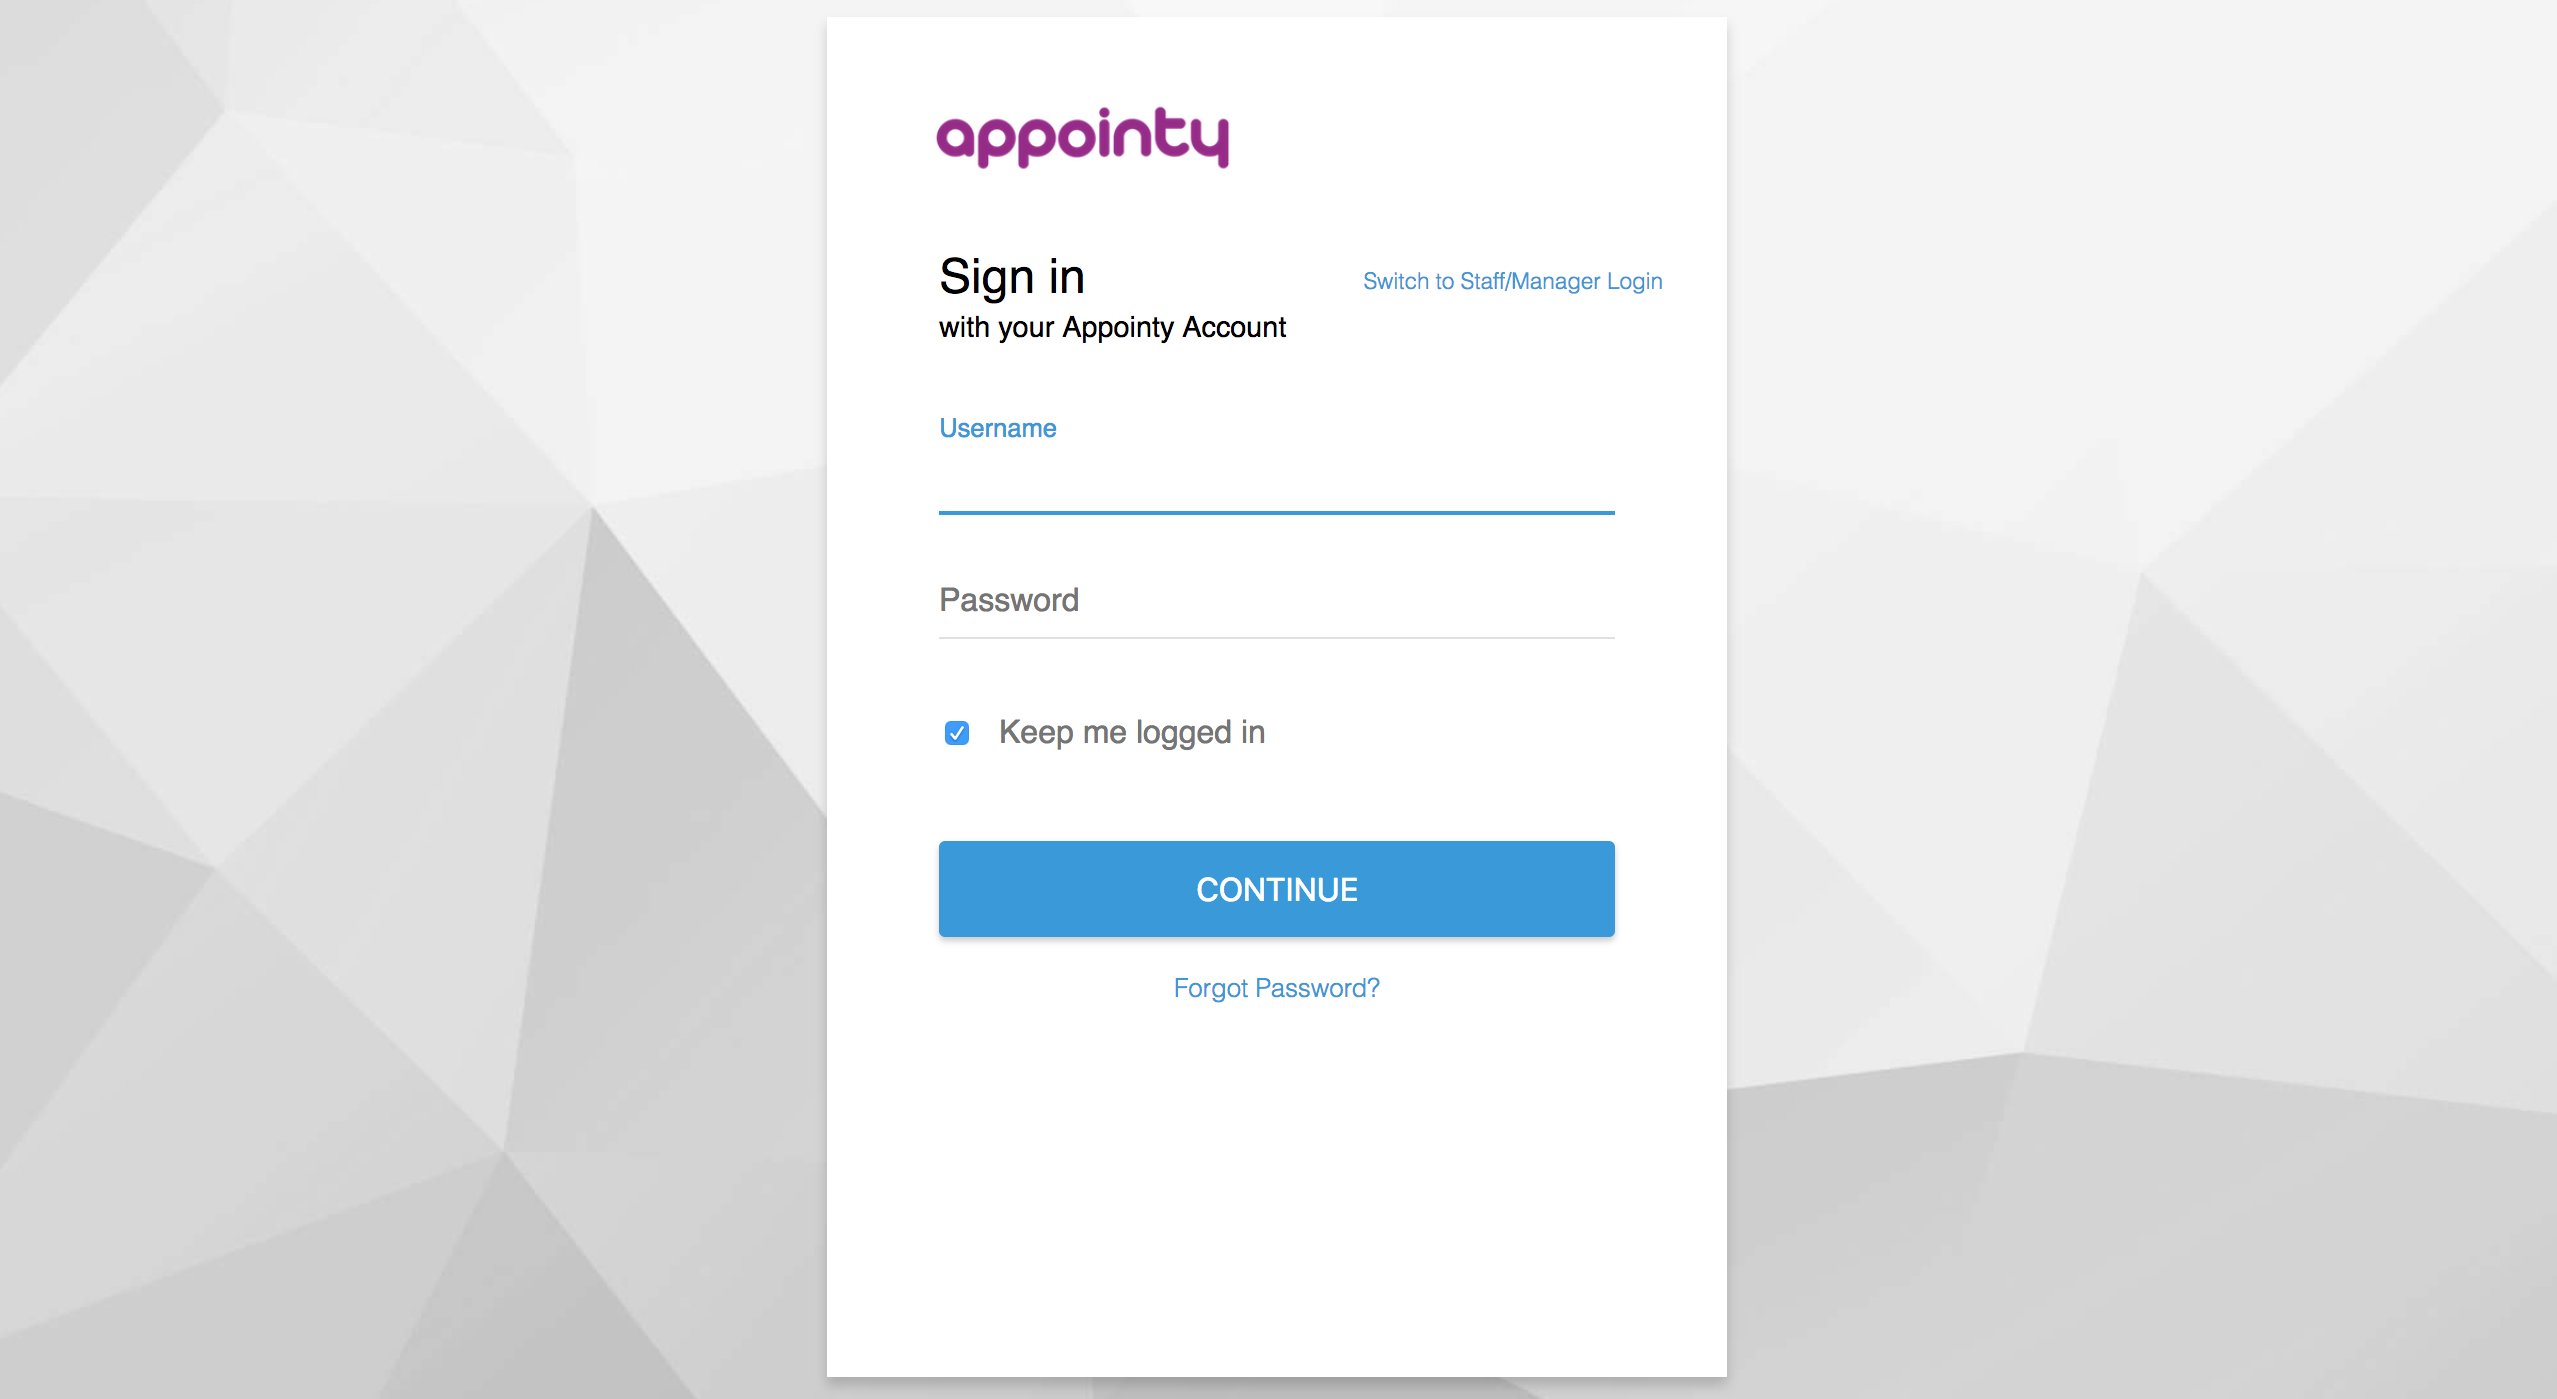 Login to Appointy